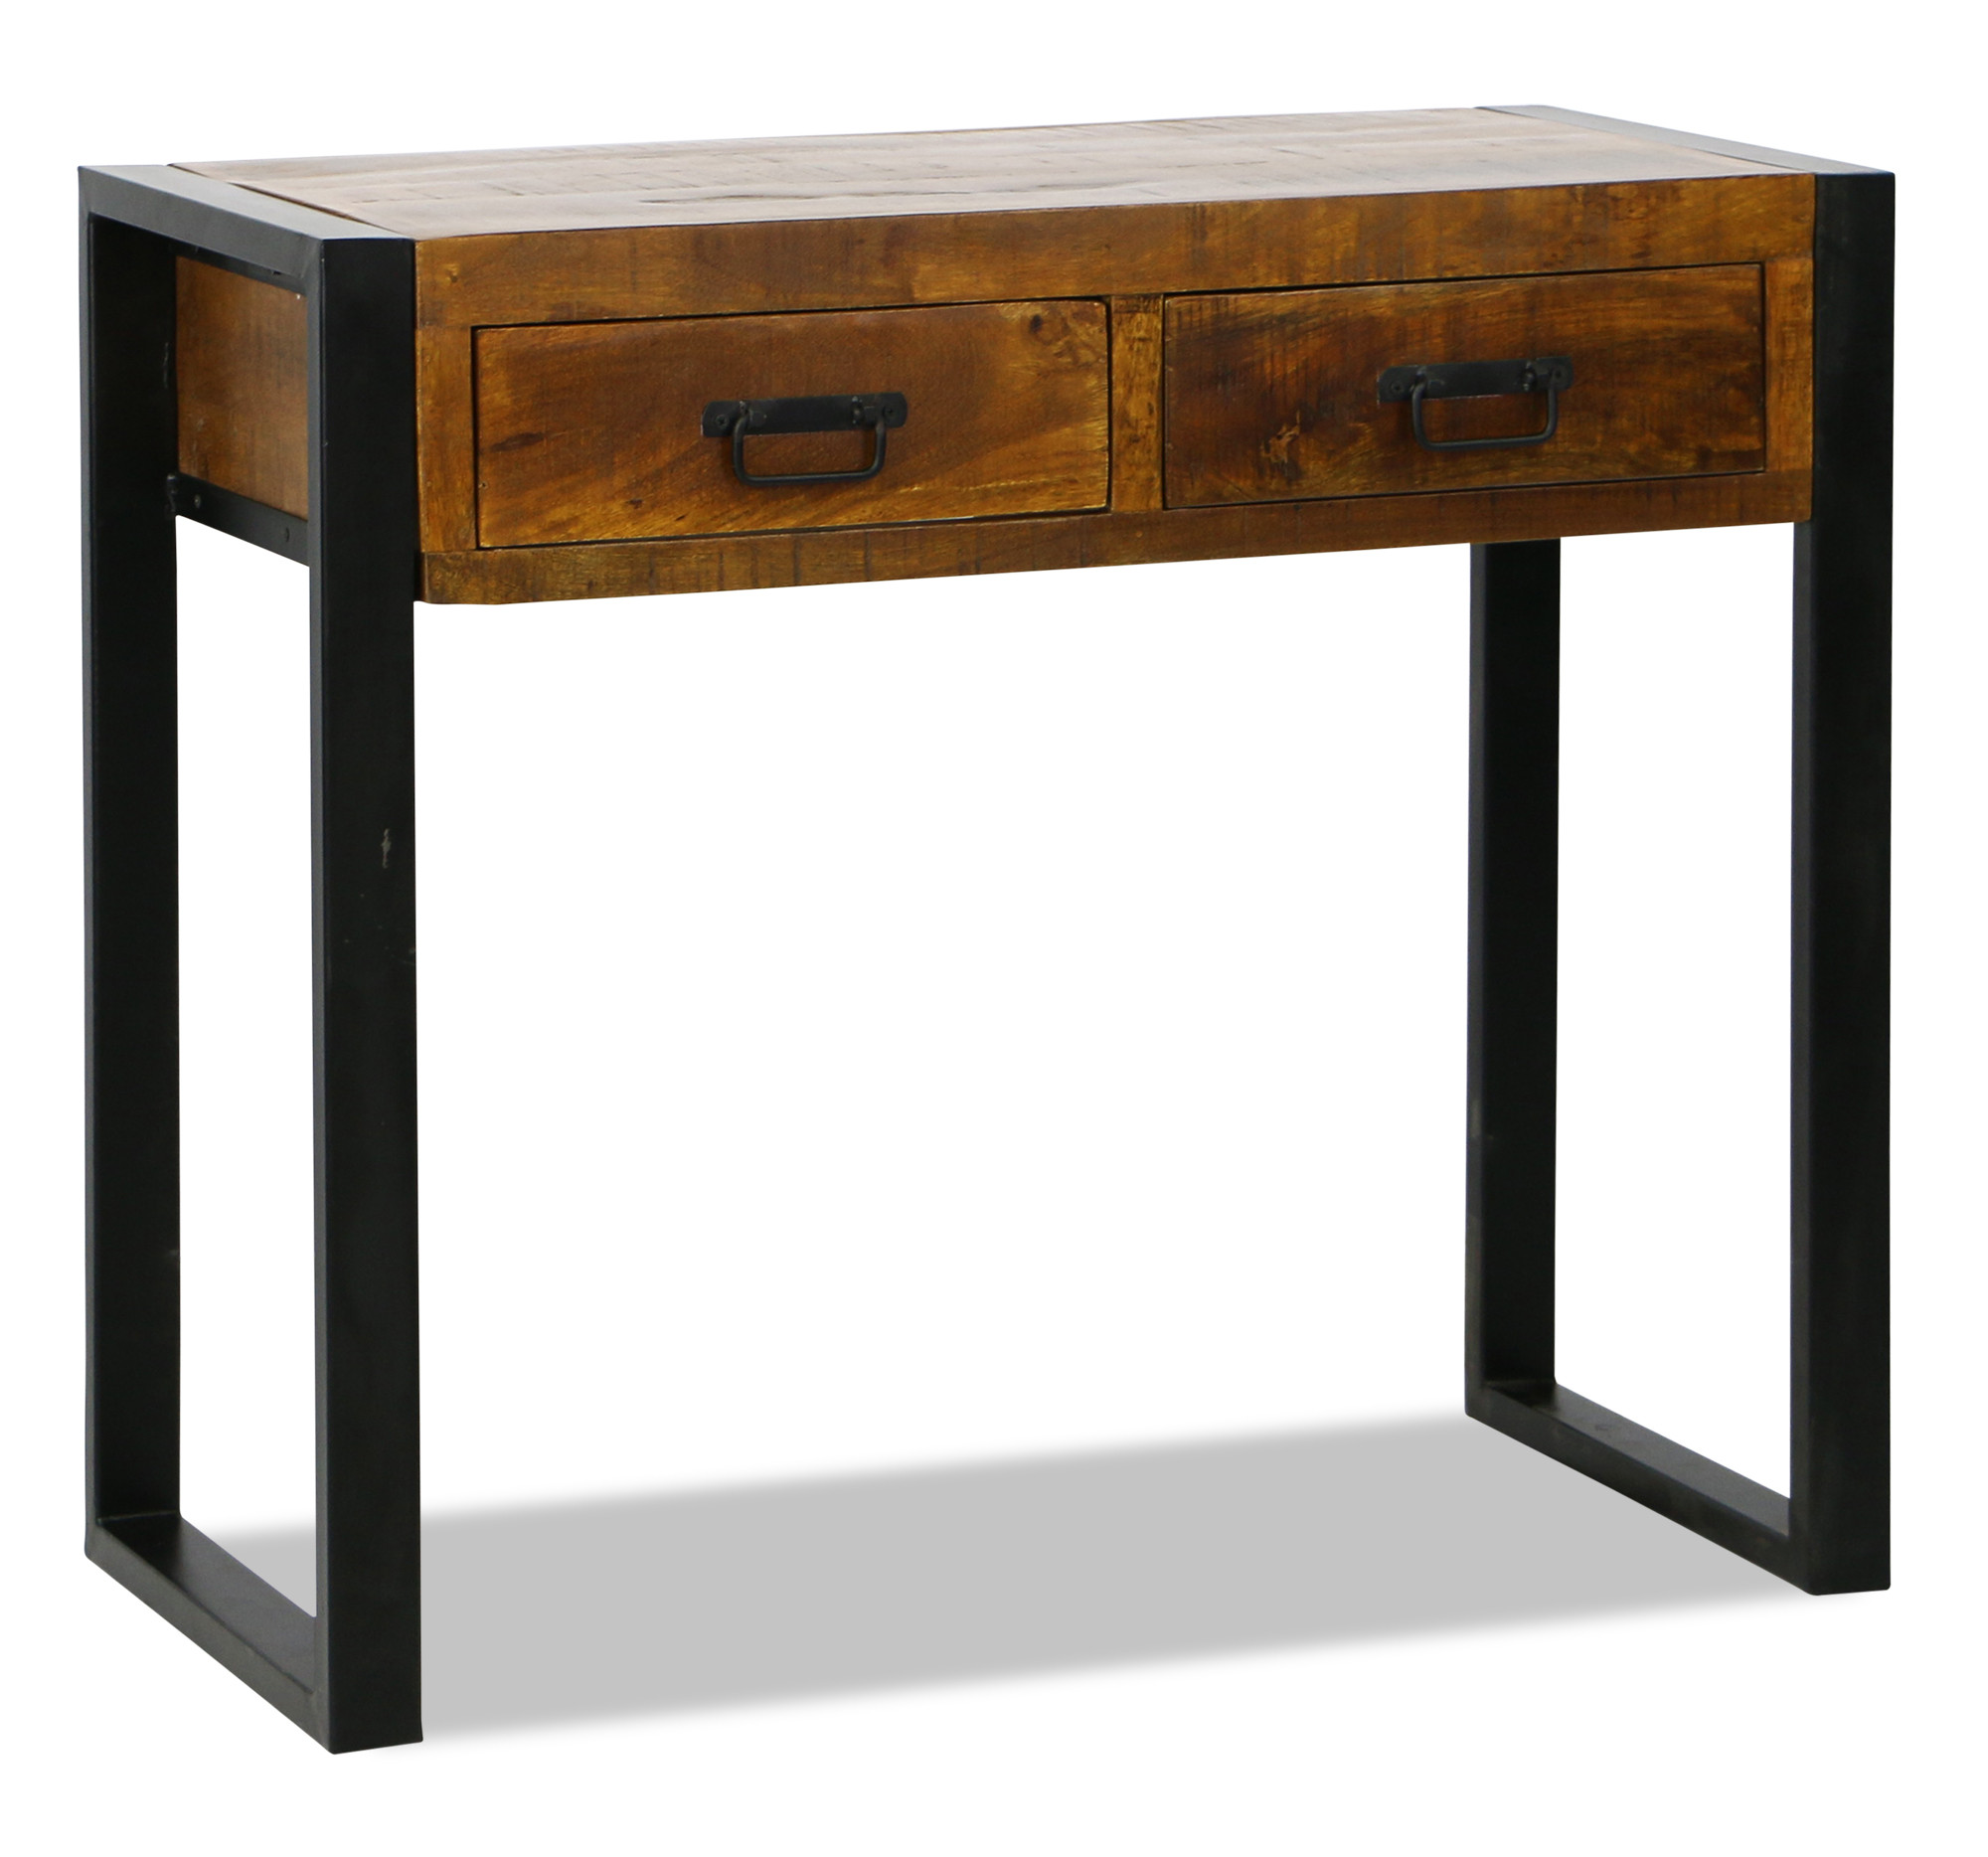 Ruslan drawer console table furniture home décor